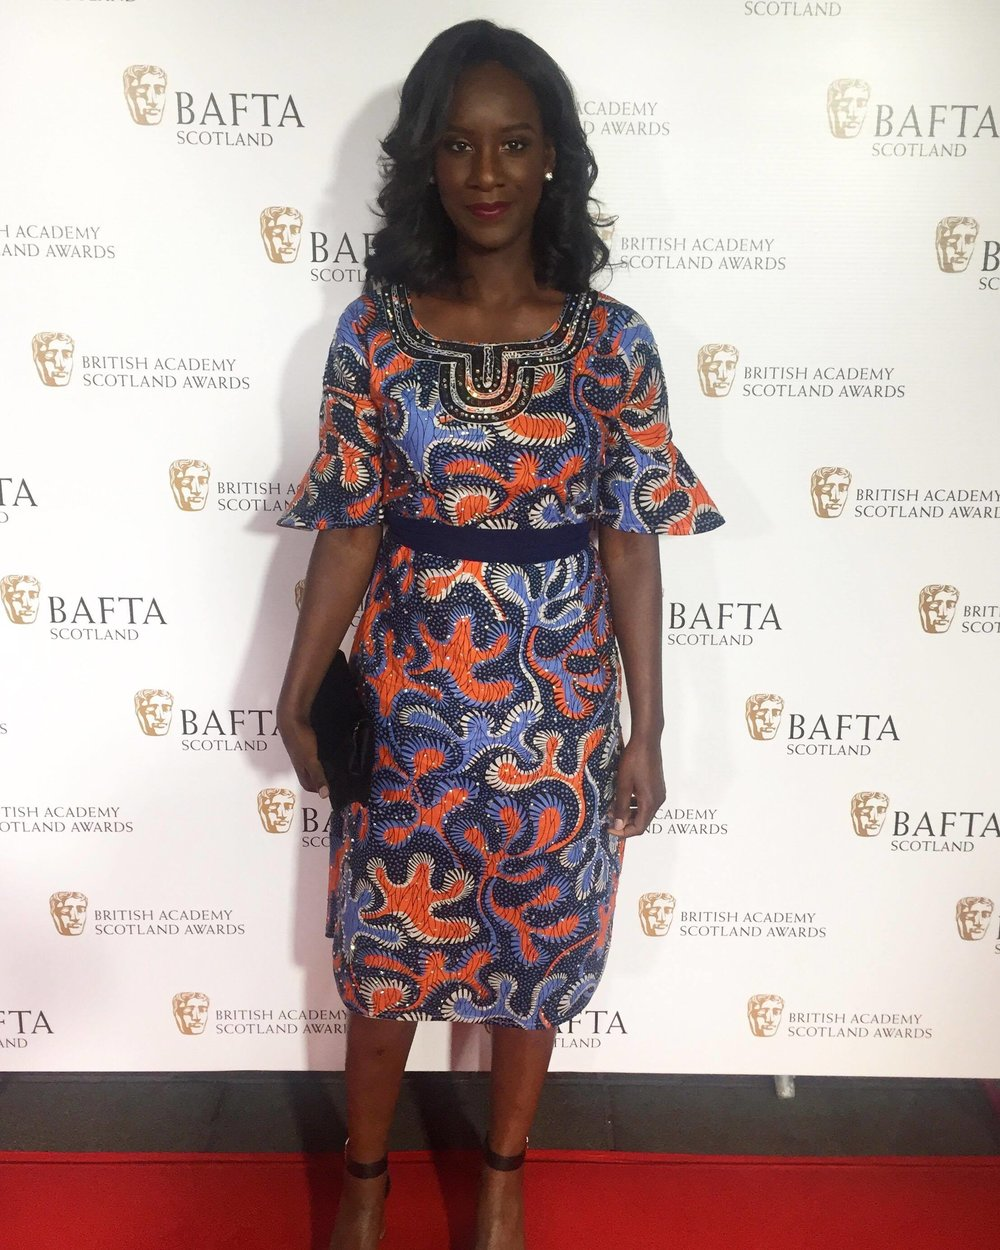 BAFTA Scotland Red Carpet - Moyo Akande.jpg